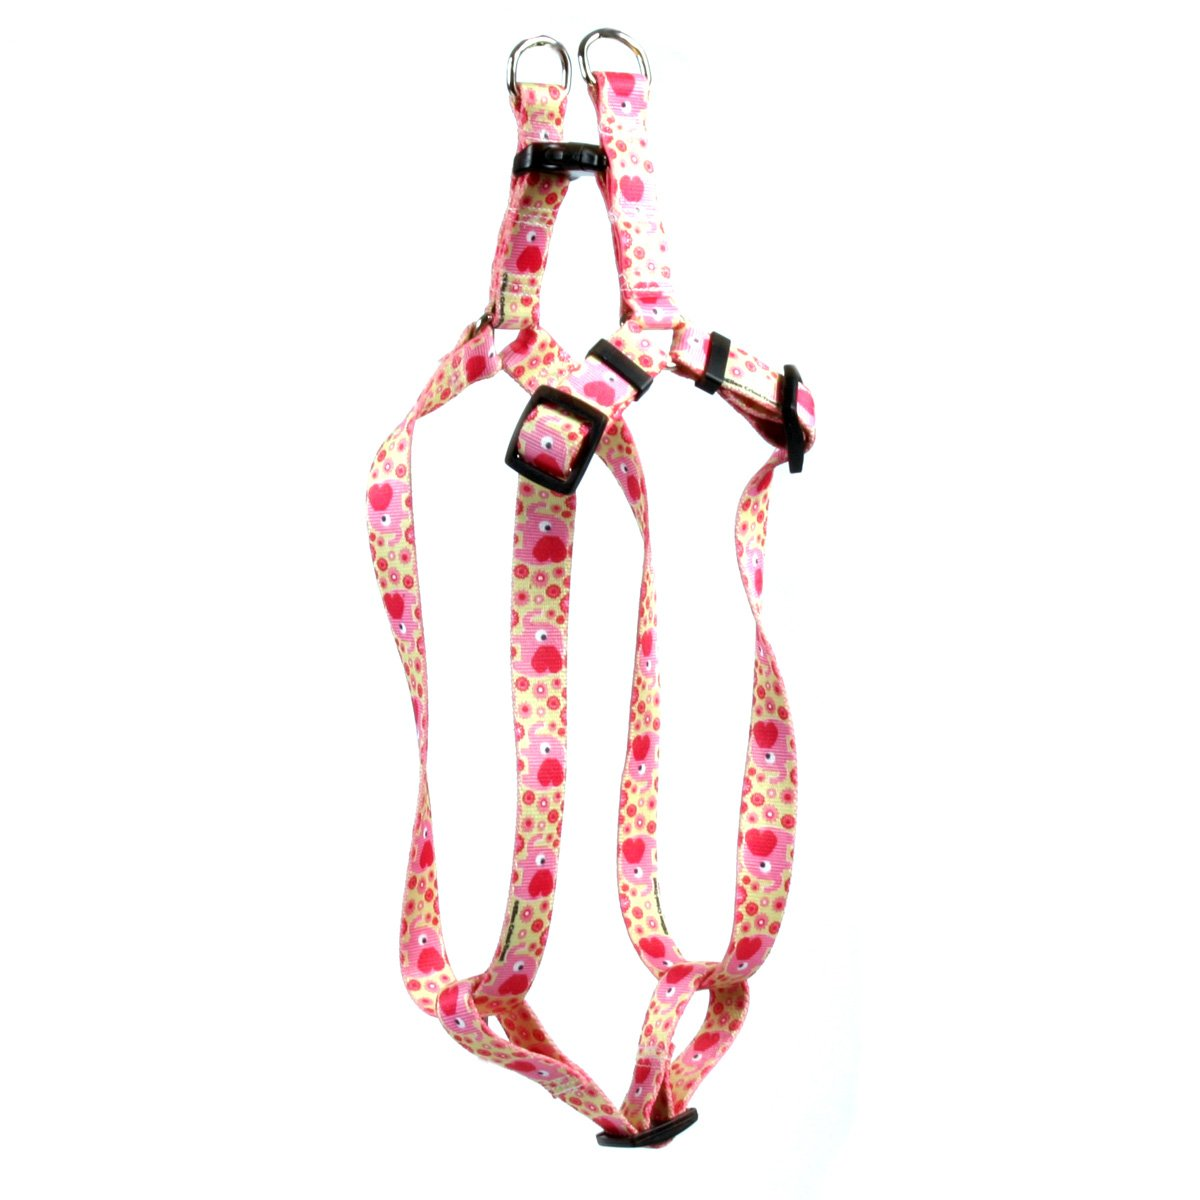 Yellow Dog Design Pink Elephants Step-in Dog Harness, Medium-3/4 Wide and fits Chest of 15 to 25'' by Yellow Dog Design